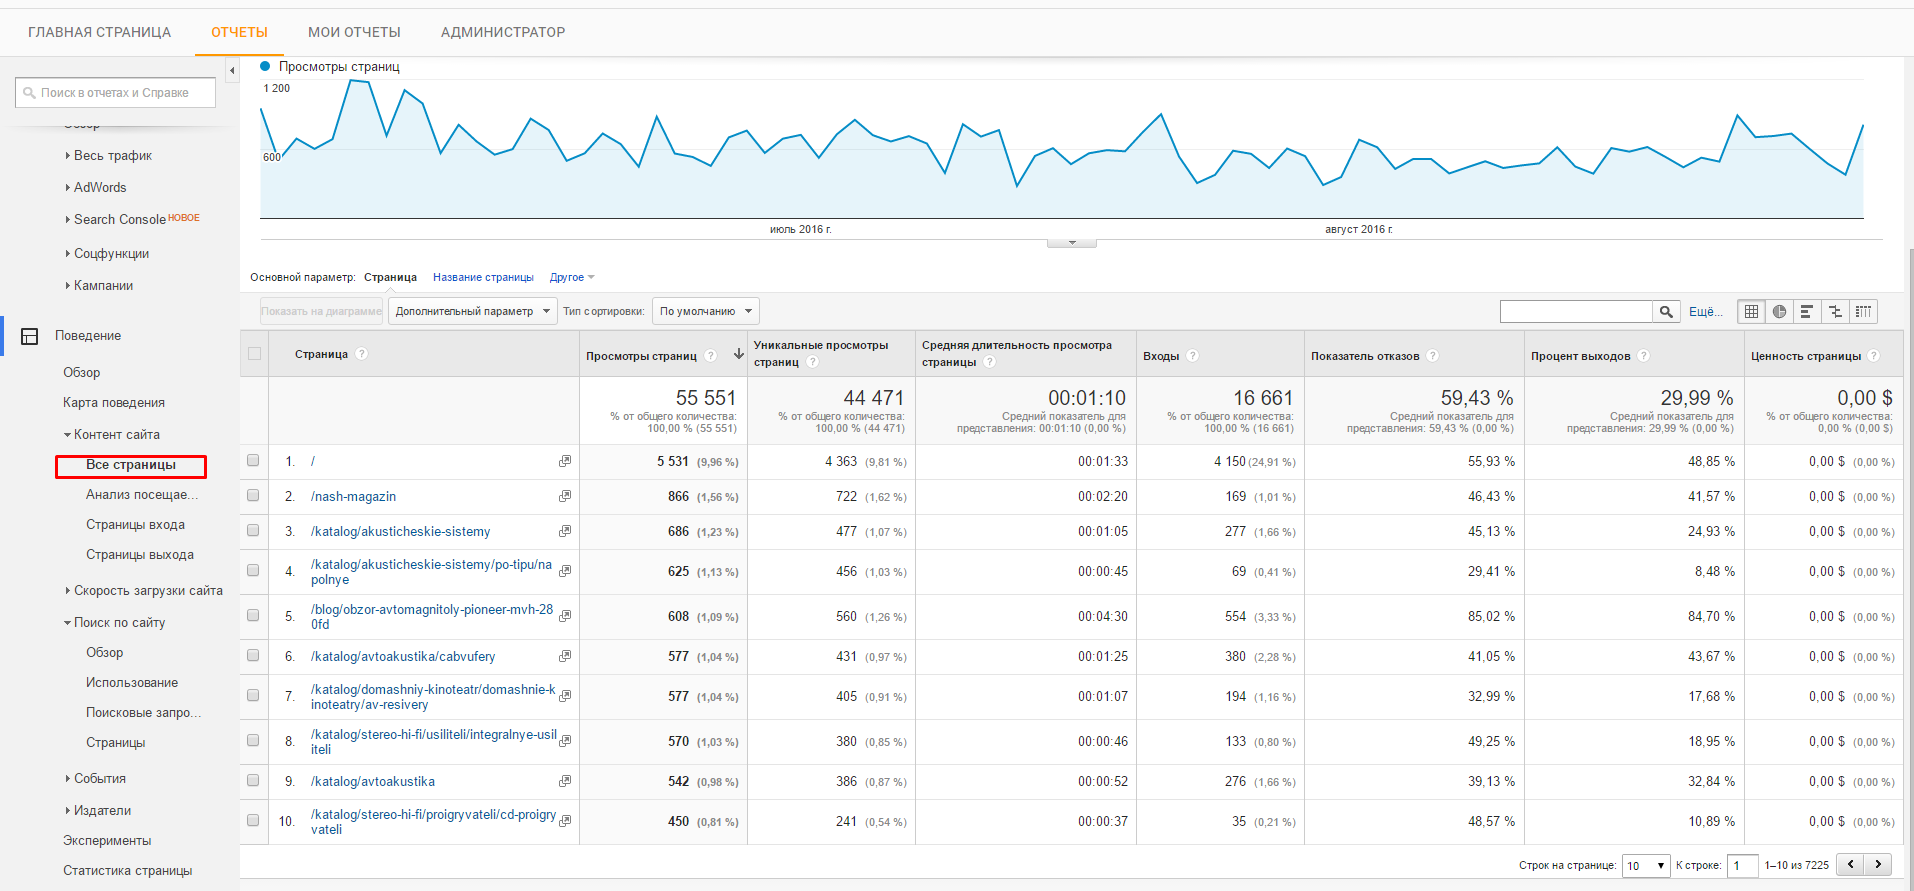 данные по страницам Google Analytics